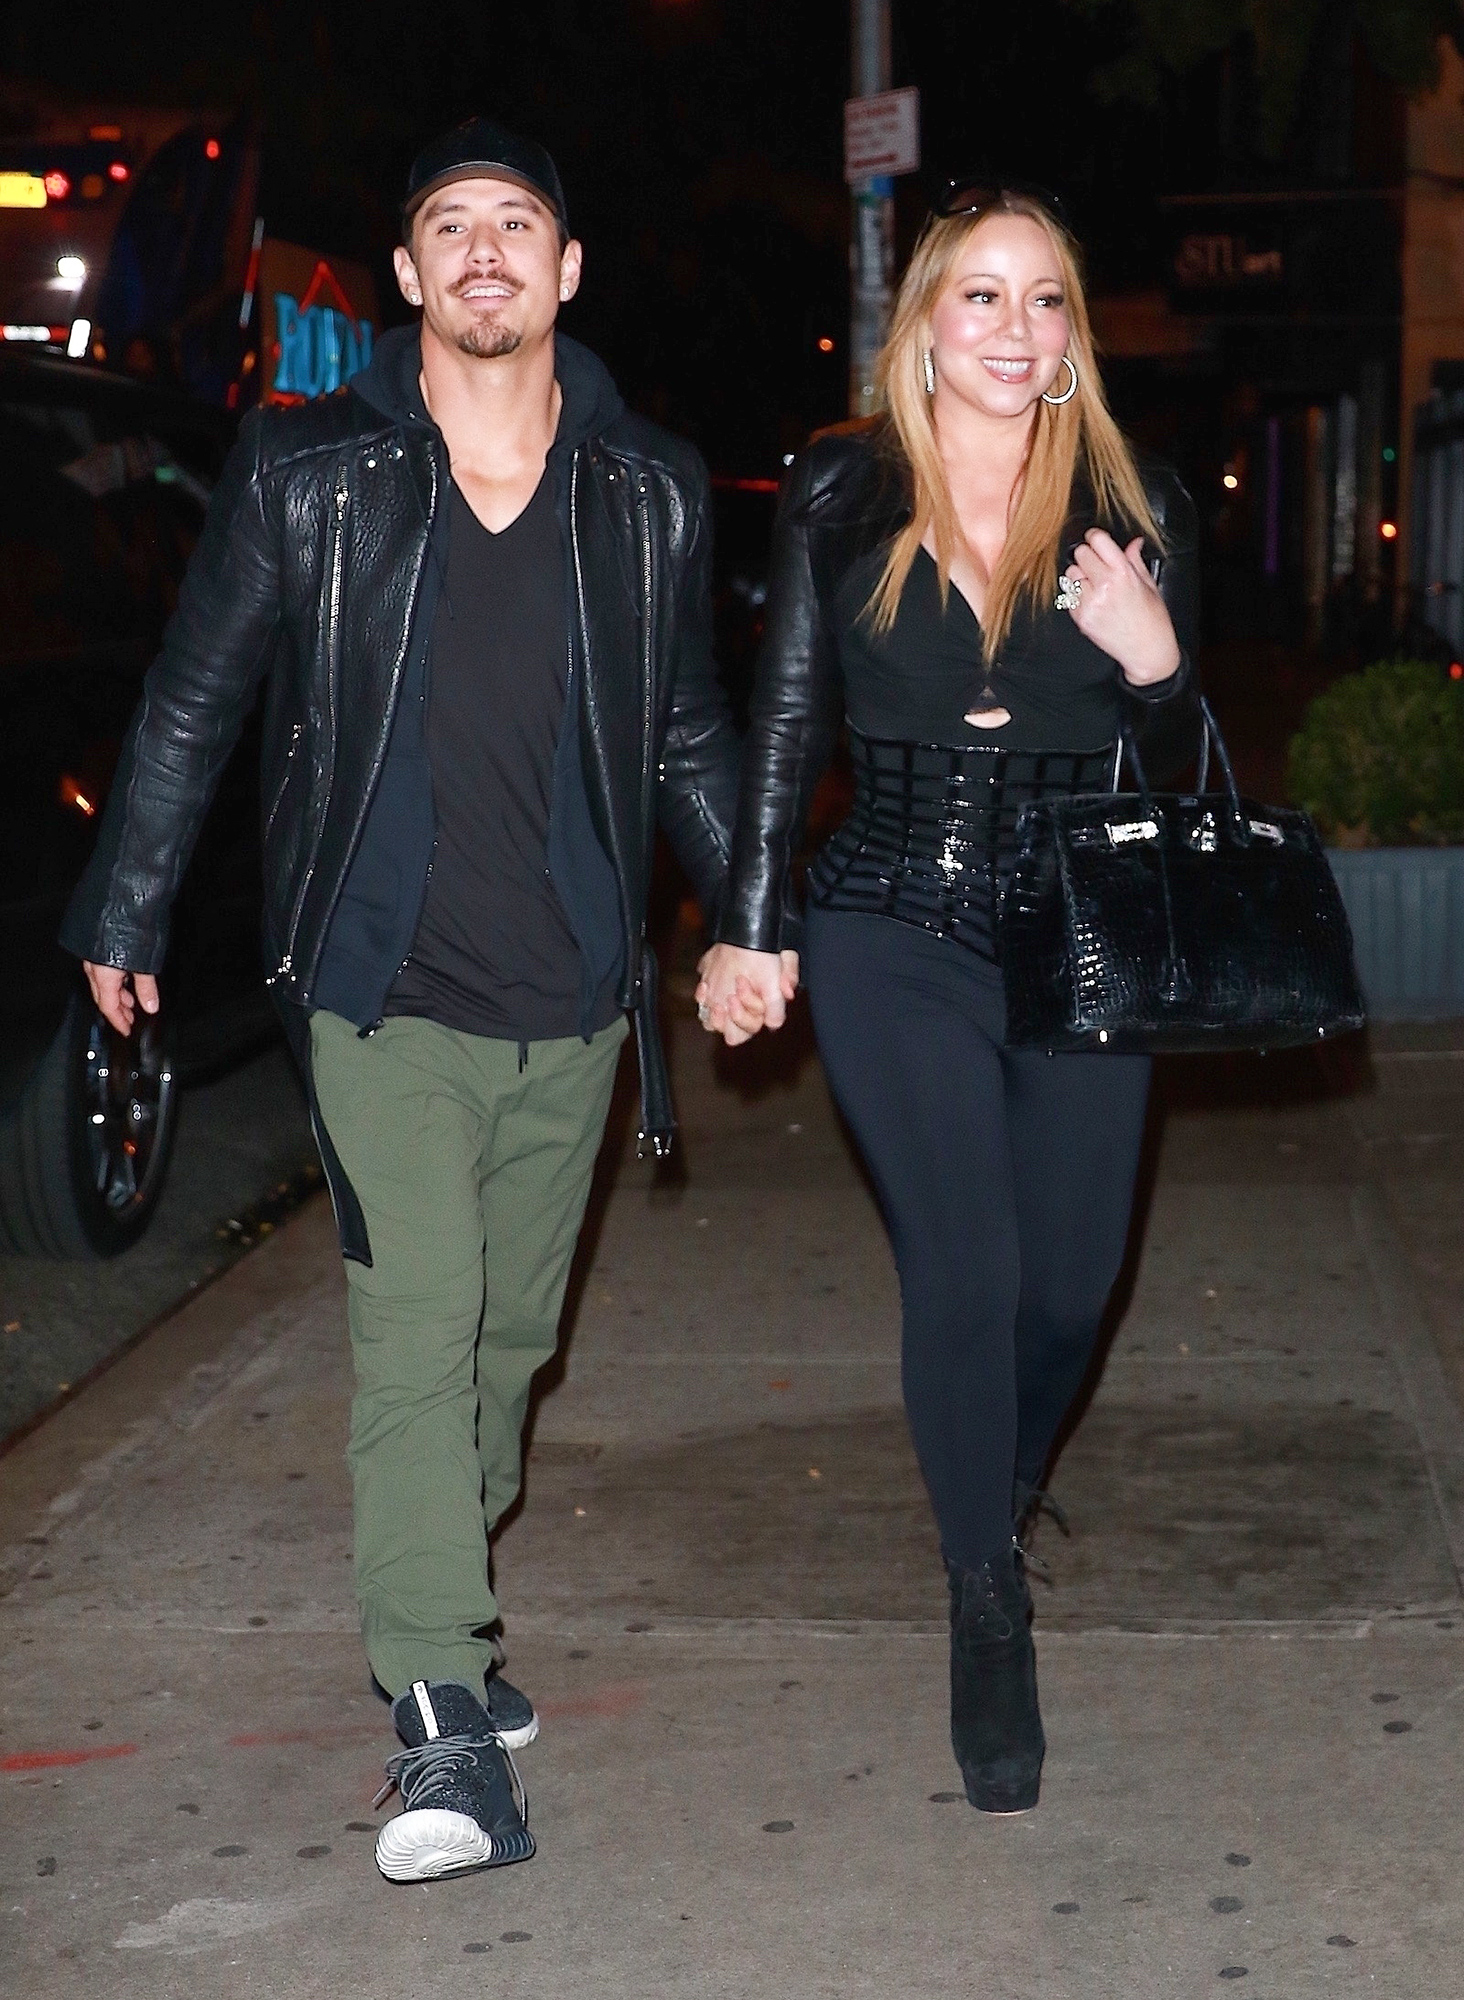 *EXCLUSIVE* Mariah Carey and Bryan Tanaka grab a late night bite at Blue Ribbon Brasserie in NYC